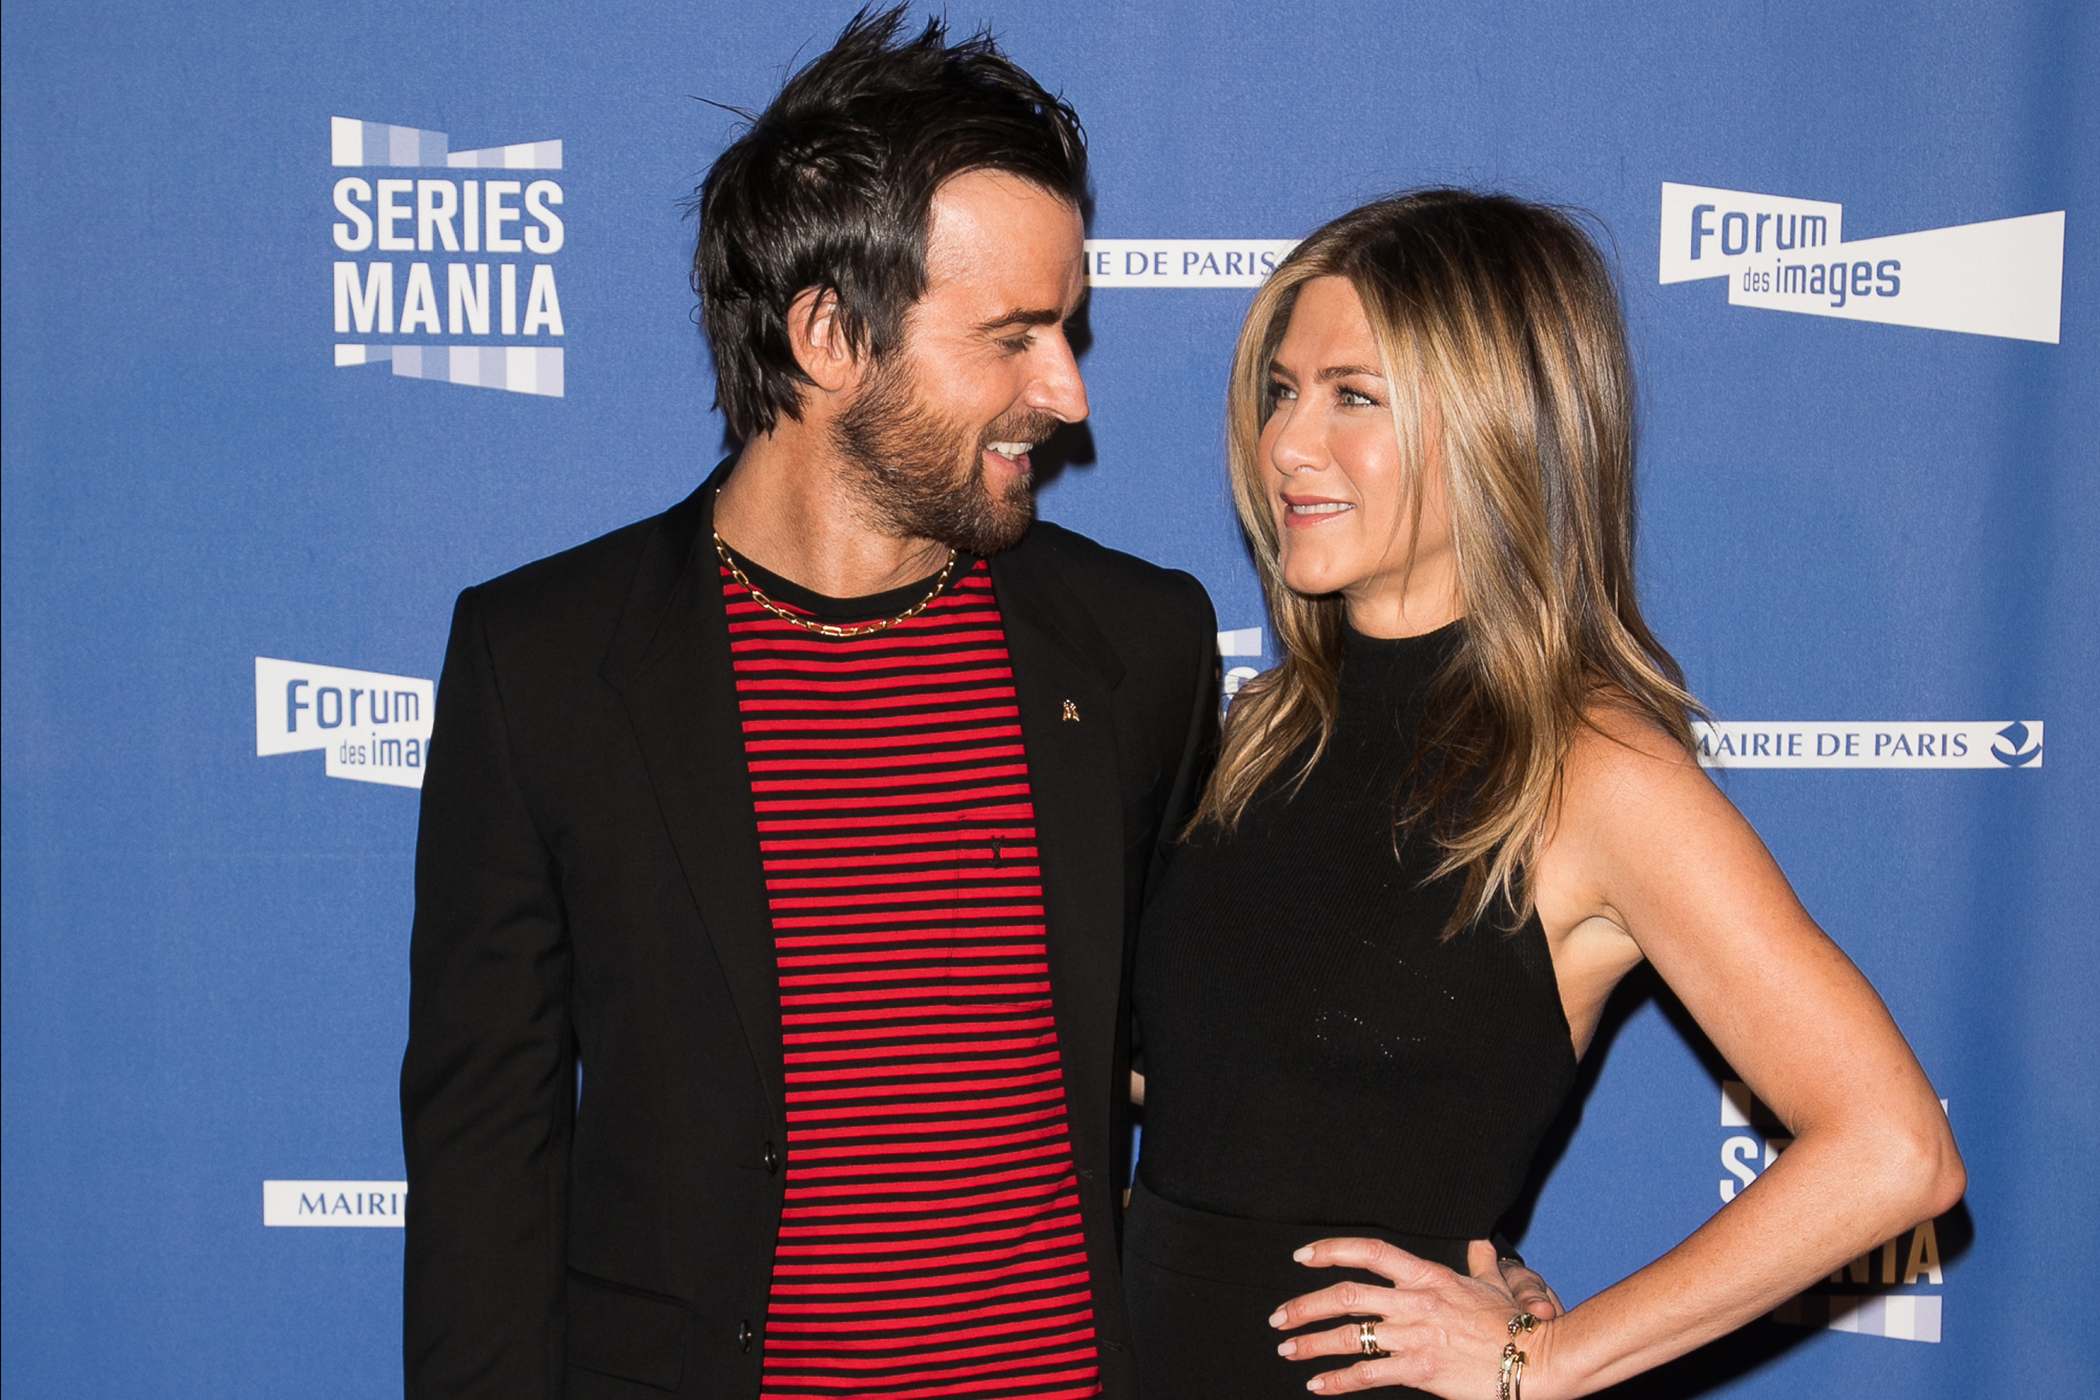 170706-richer-wives-justin-theroux-jennifer-aniston